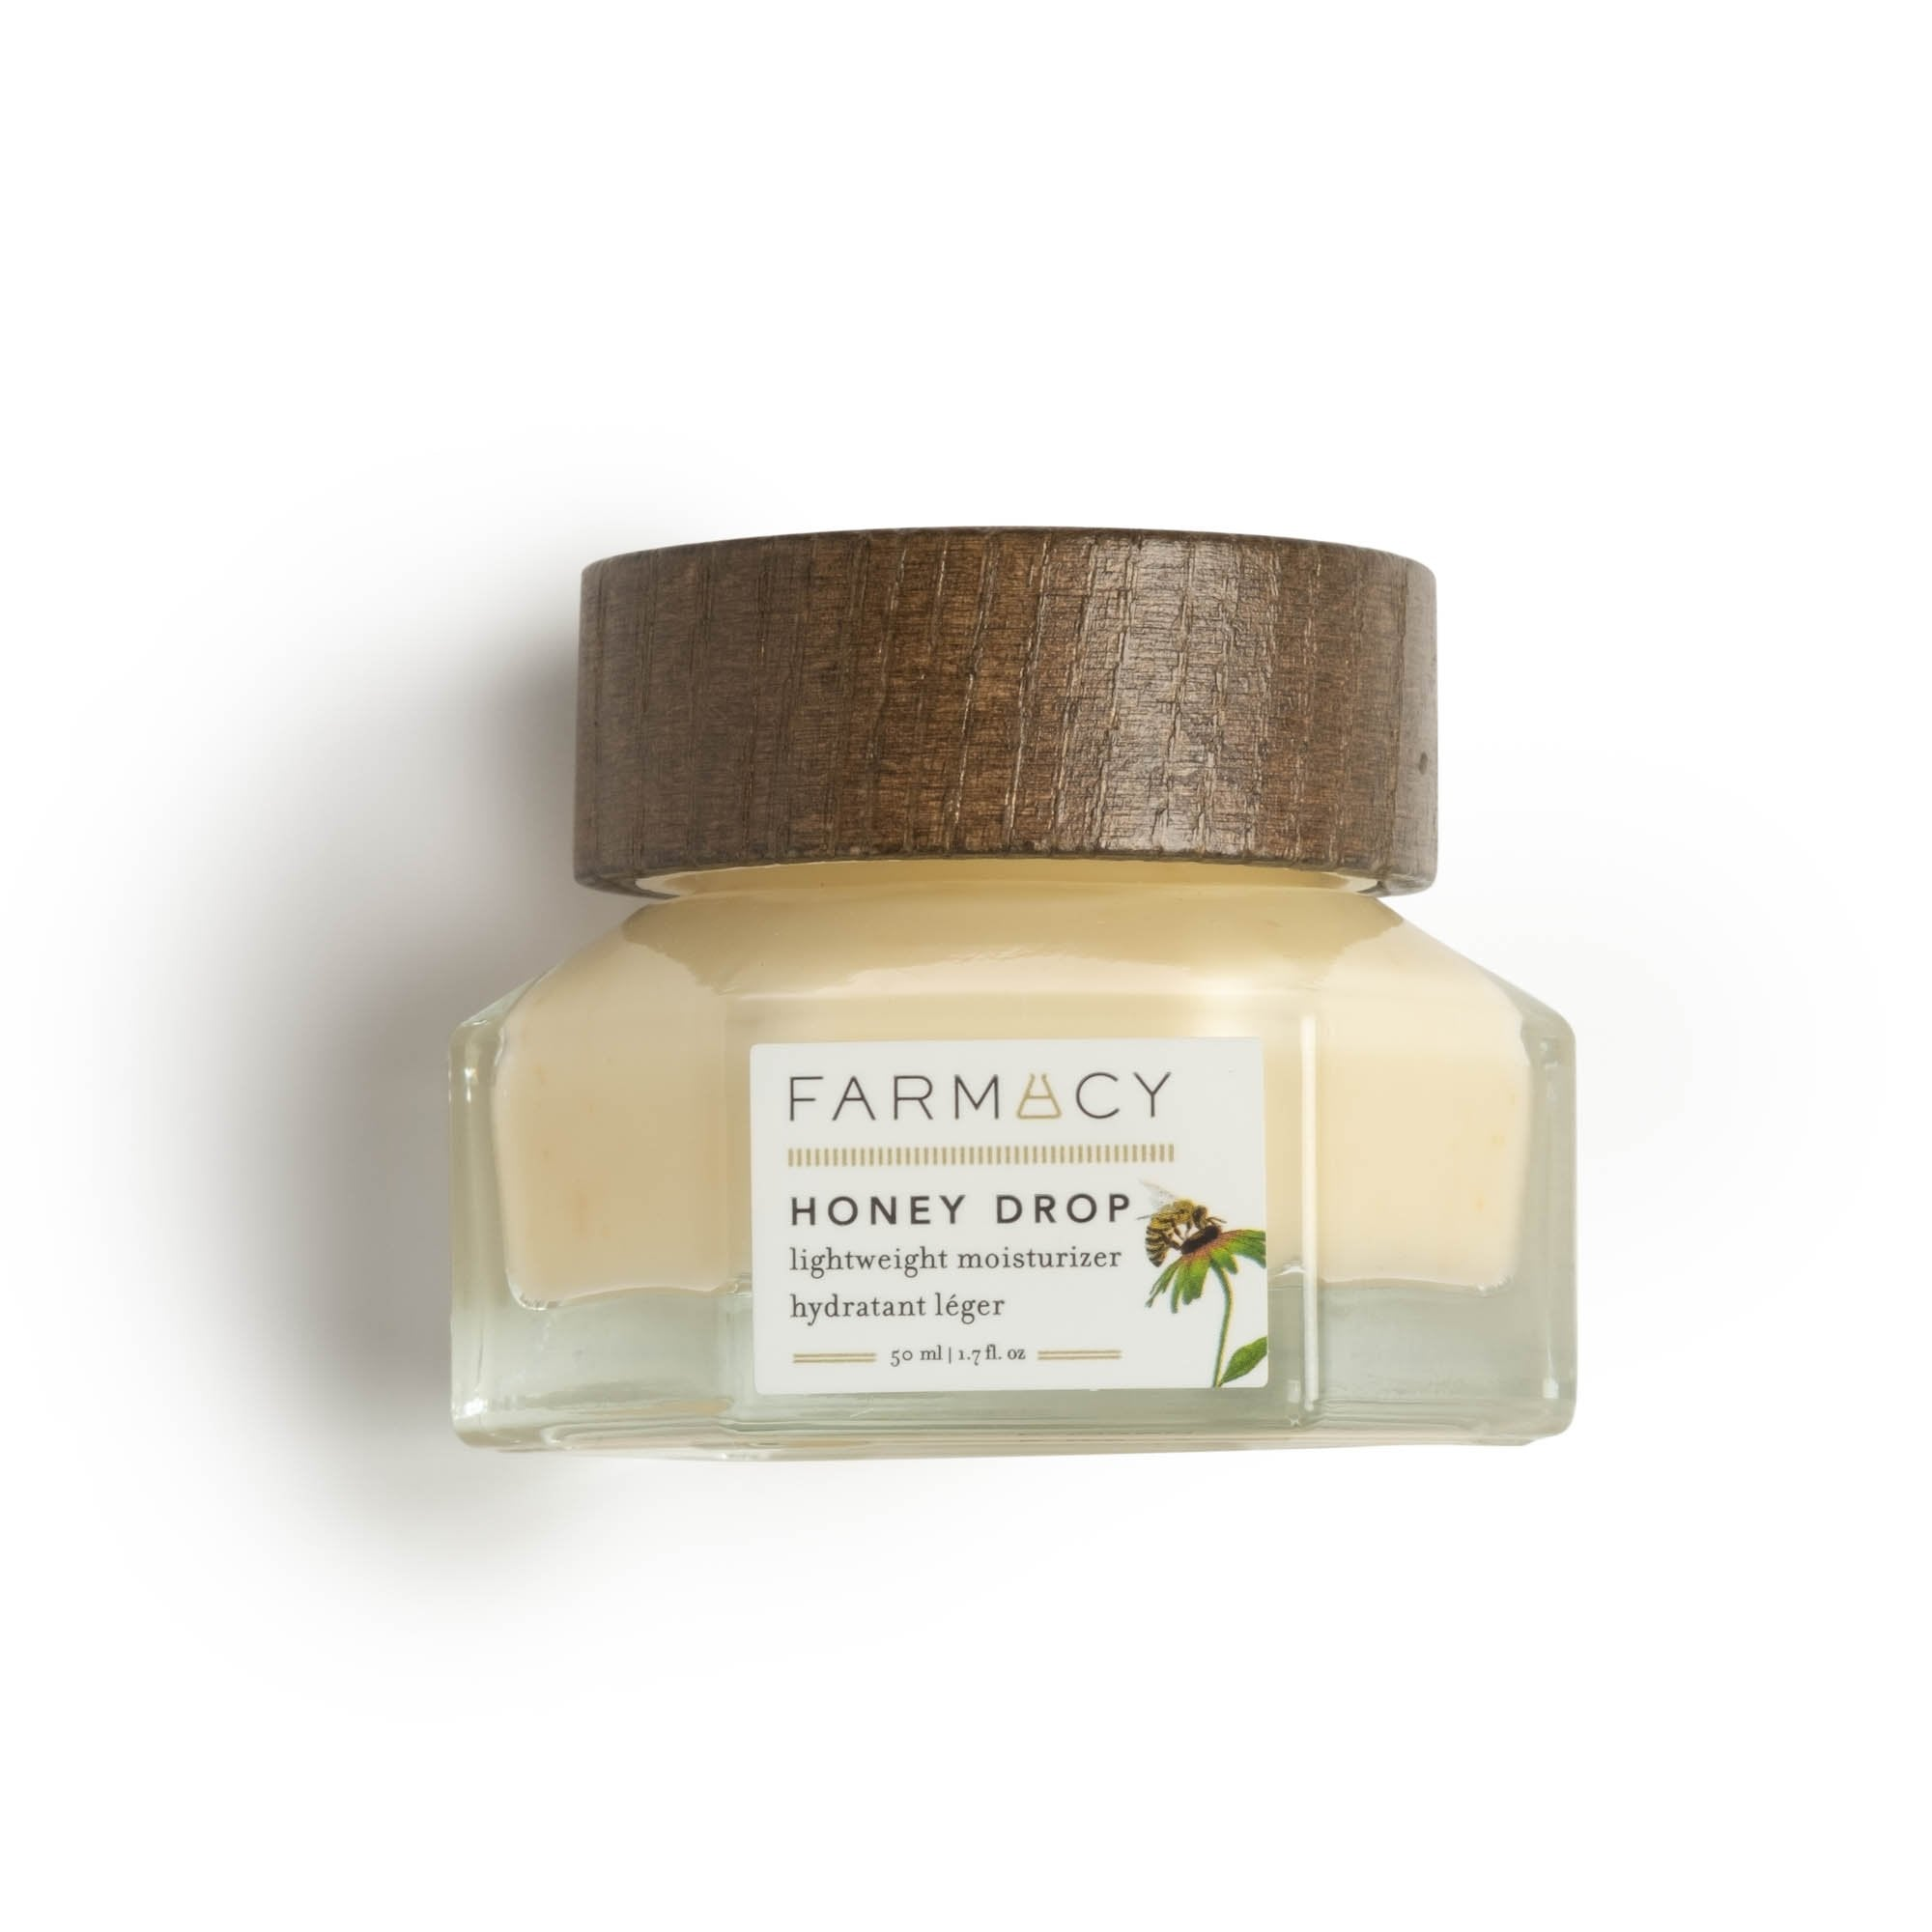 Farmacy Honey Drop 50ml